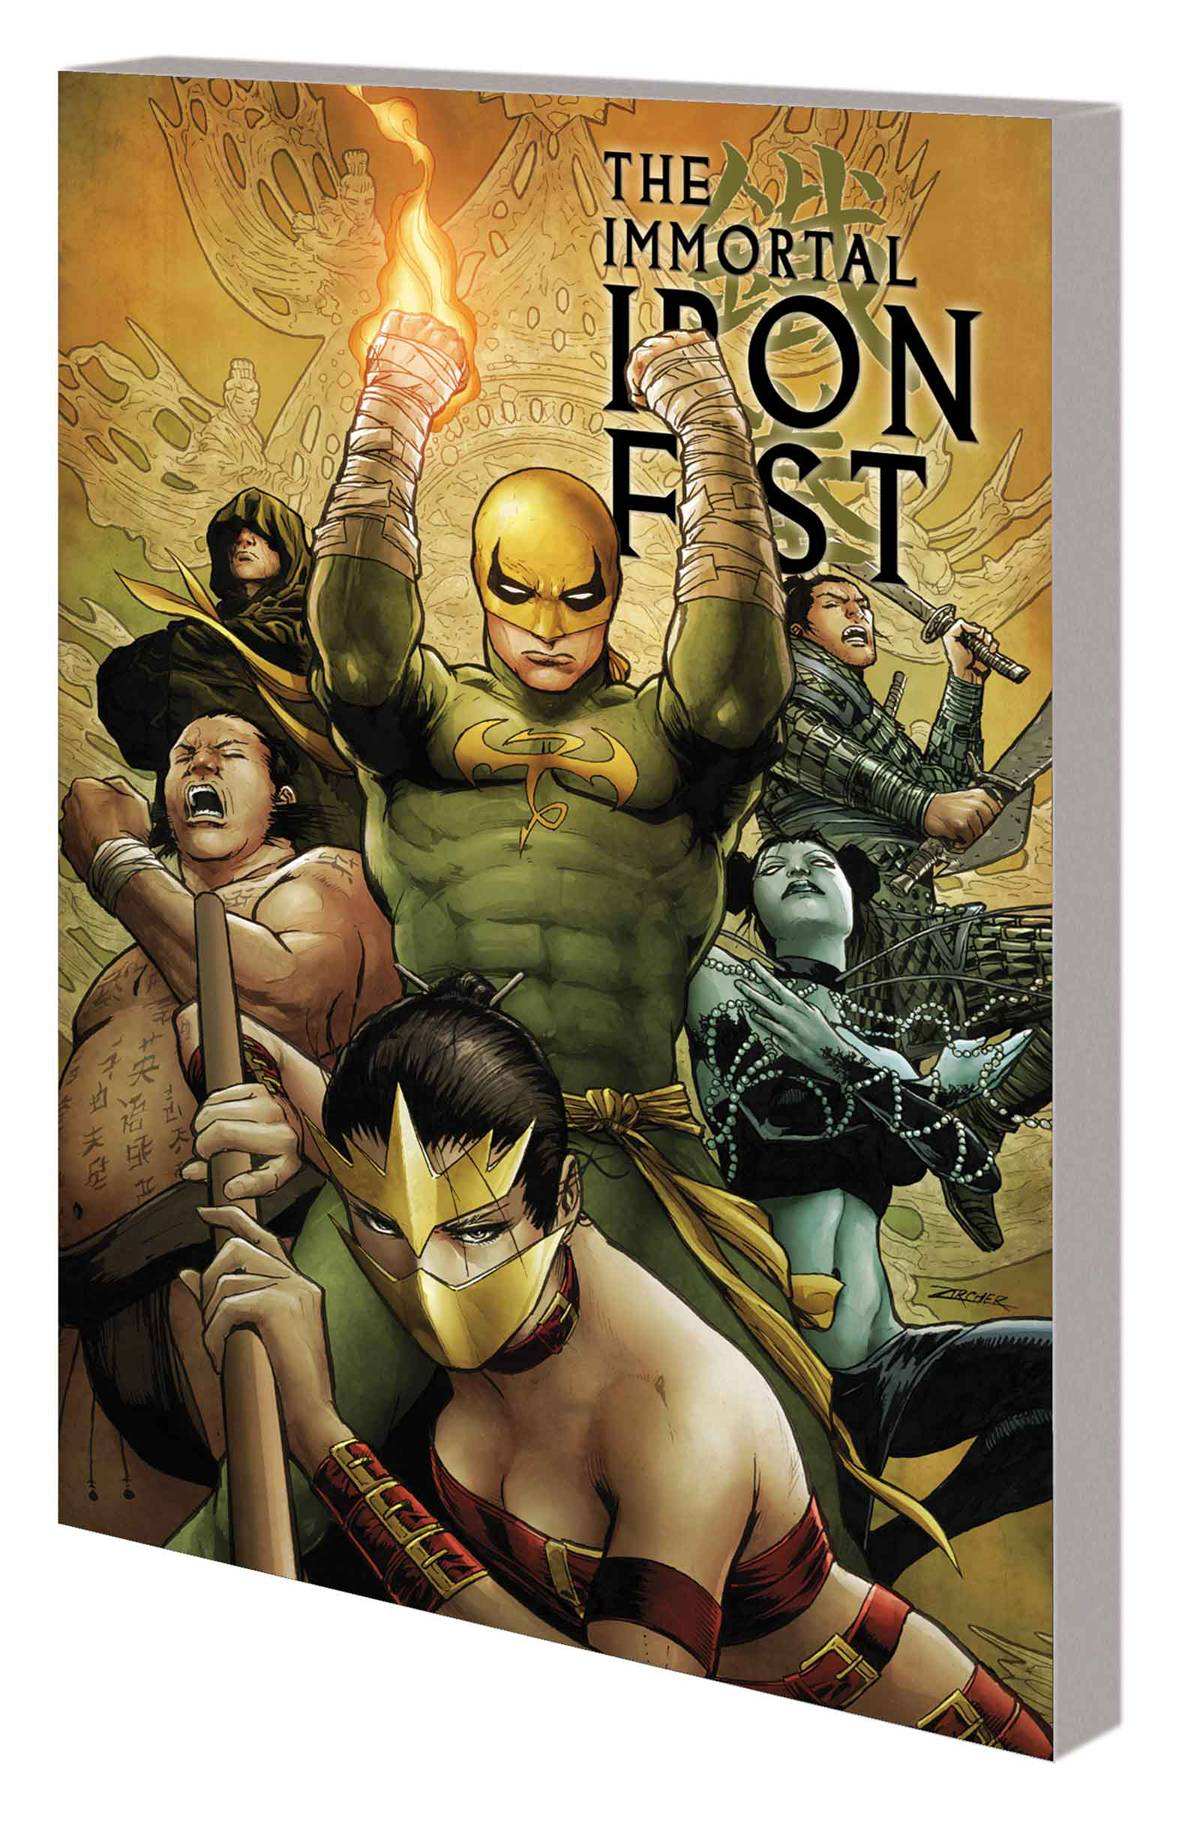 IMMORTAL IRON FIST: THE COMPLETE COLLECTION VOL 02